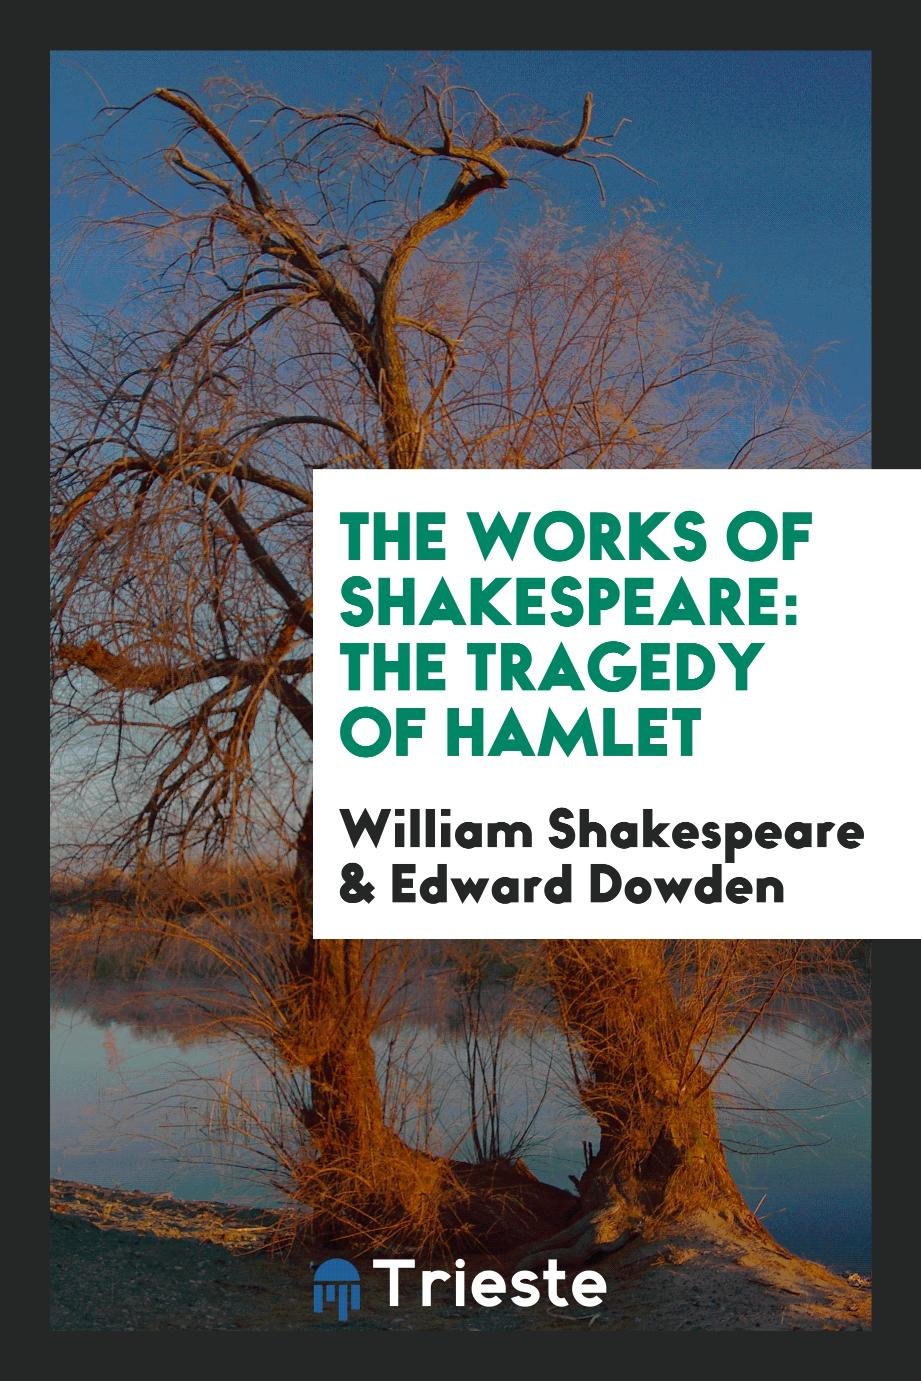 The Works of Shakespeare: The Tragedy of Hamlet